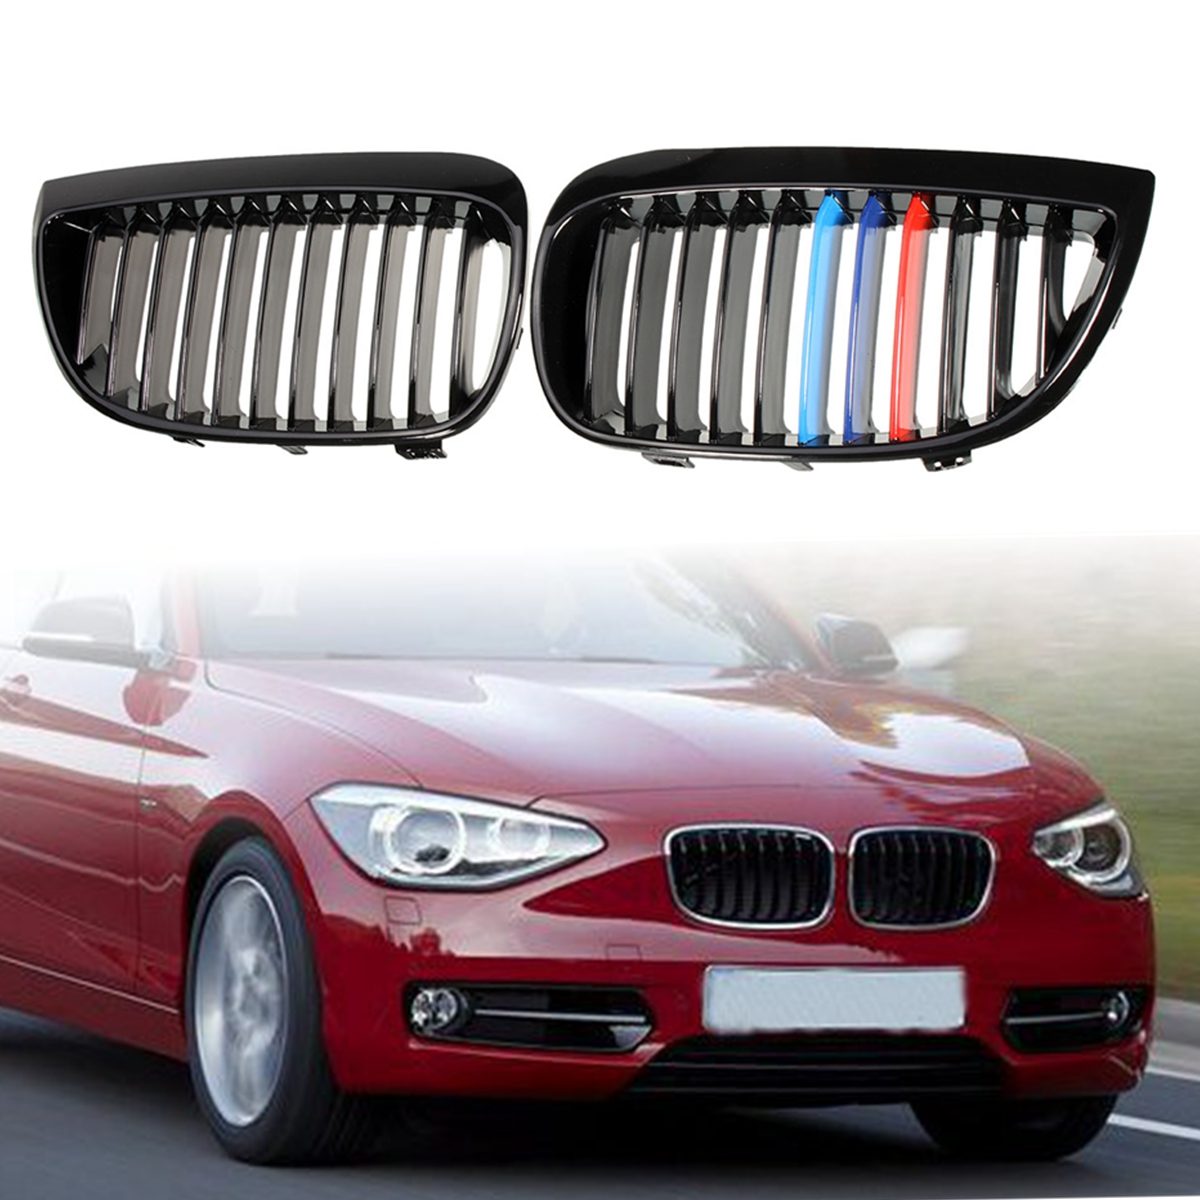 Pair Shiny Black M-Style Car Sport Kidney Grill Grille For BMW E87 E81 1Series 2004 2005 2006 2007